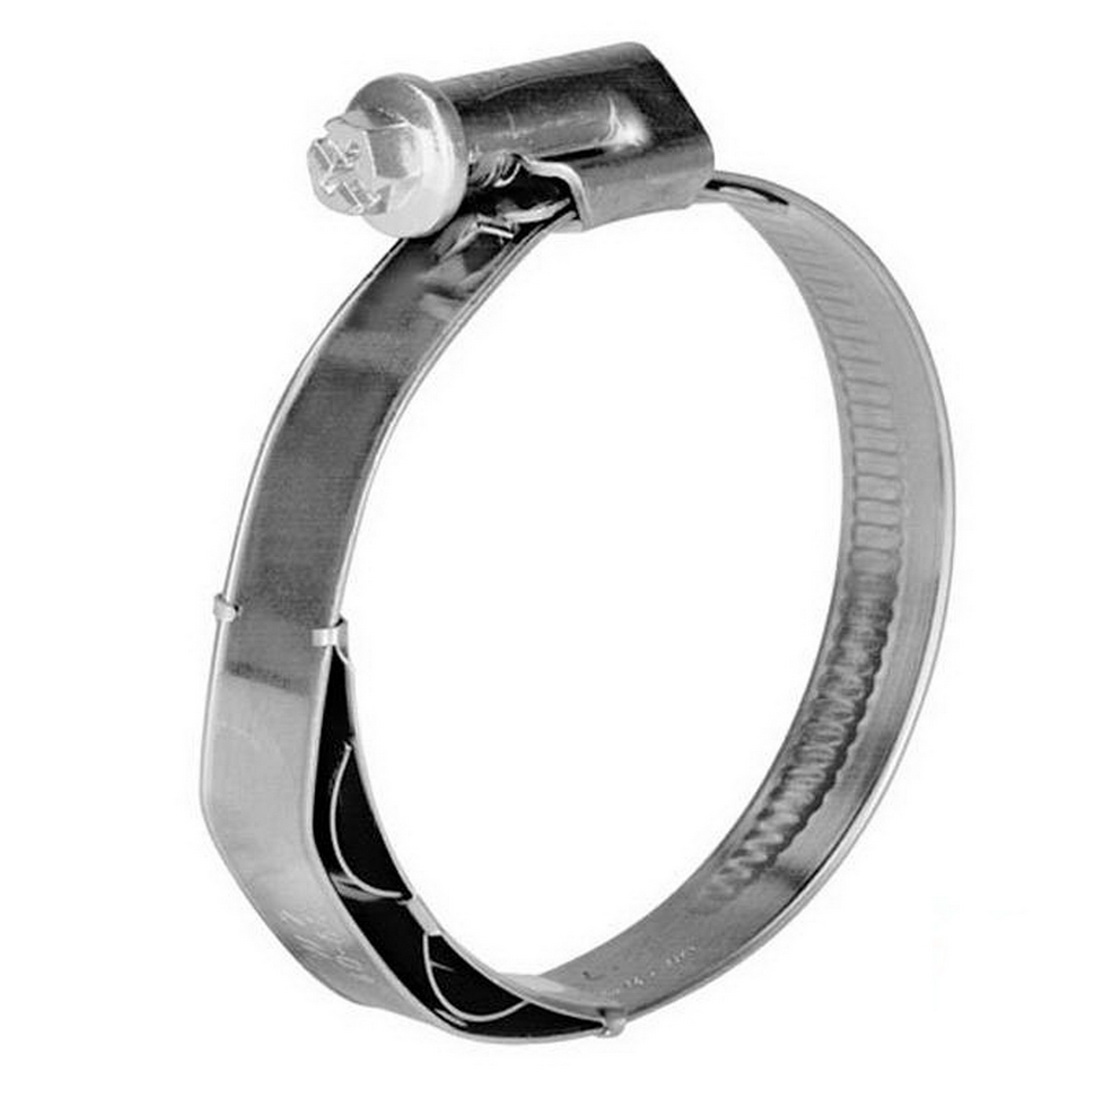 Hose Clamp SS 2 Pack 16-27mm 12mm Band